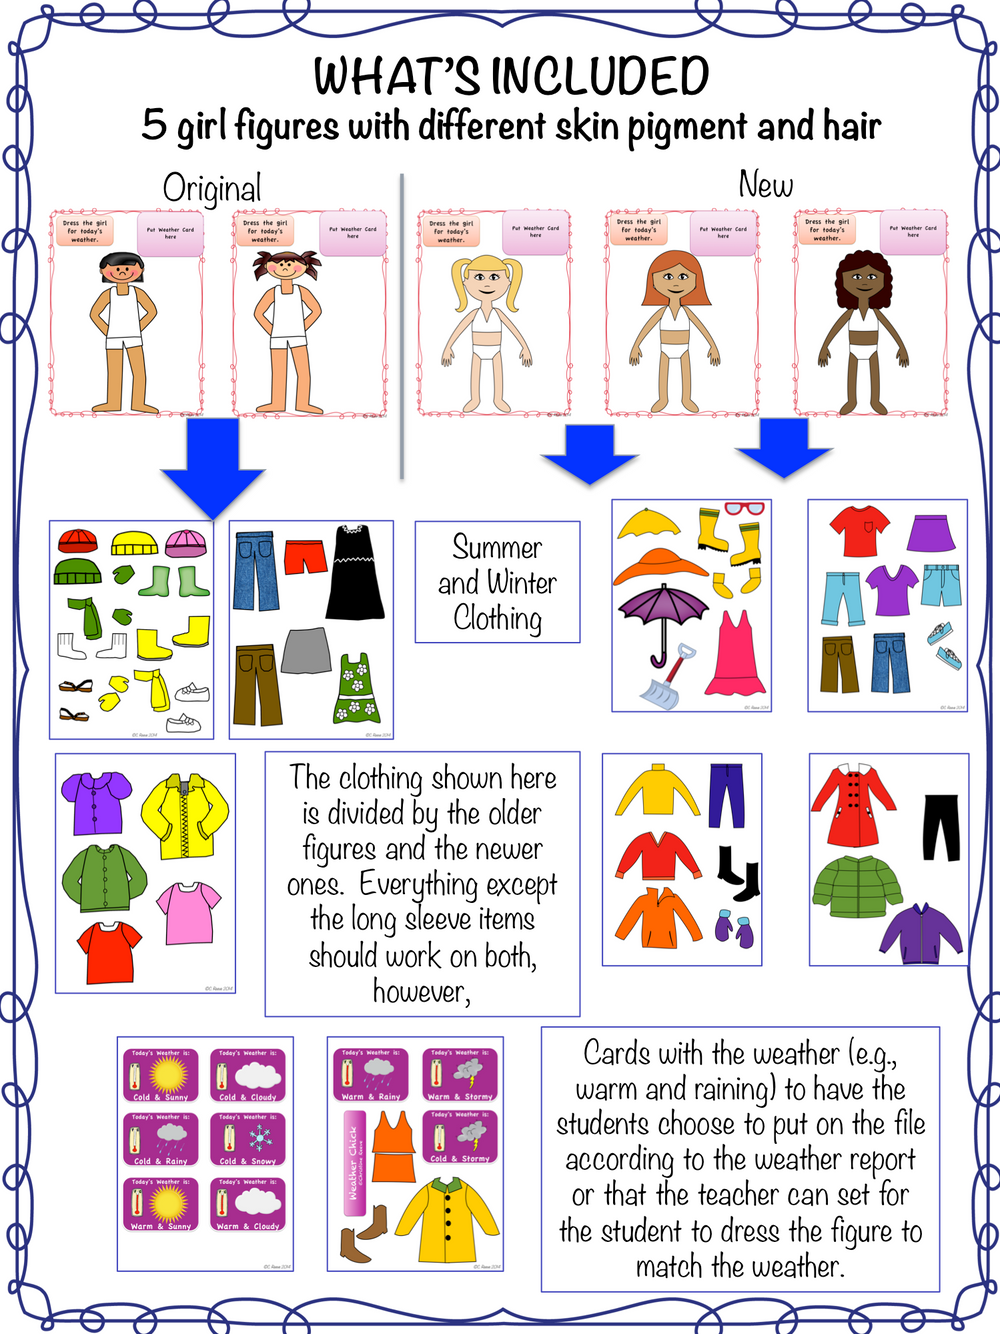 Weather Kids: Learning to Dress for the Weather